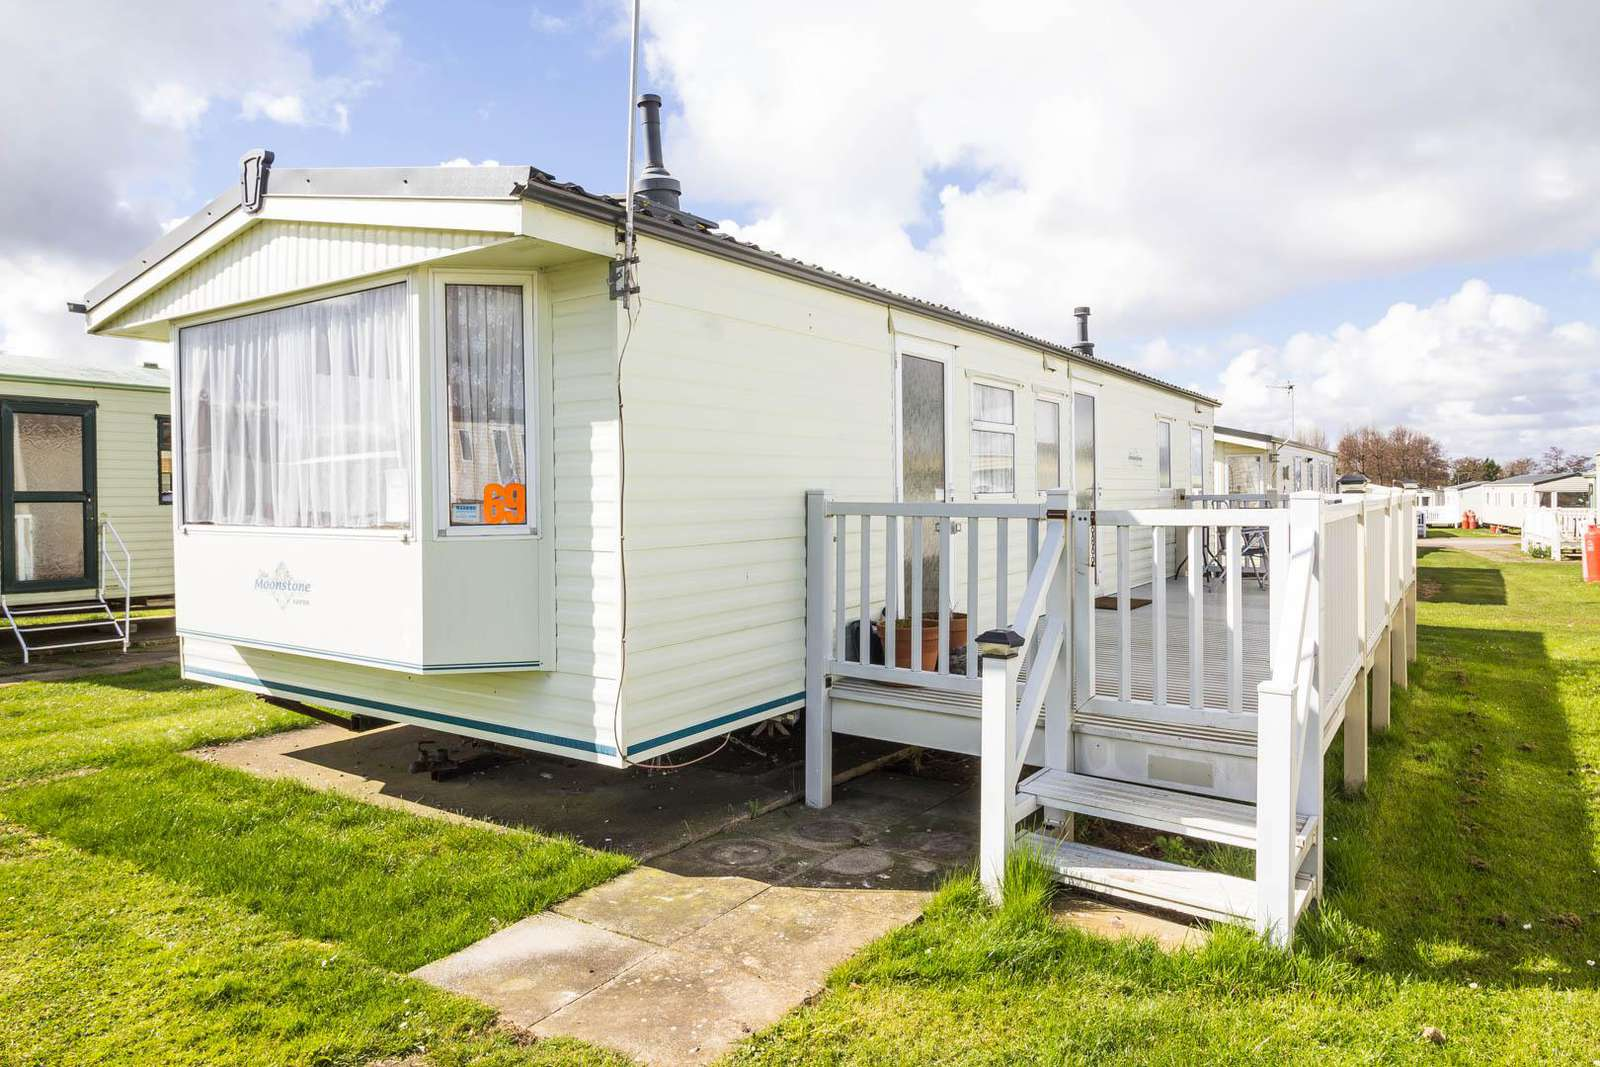 23069C – Chelsea area, 3 bed, 8 berth caravan with decking. Emerald rated. - property